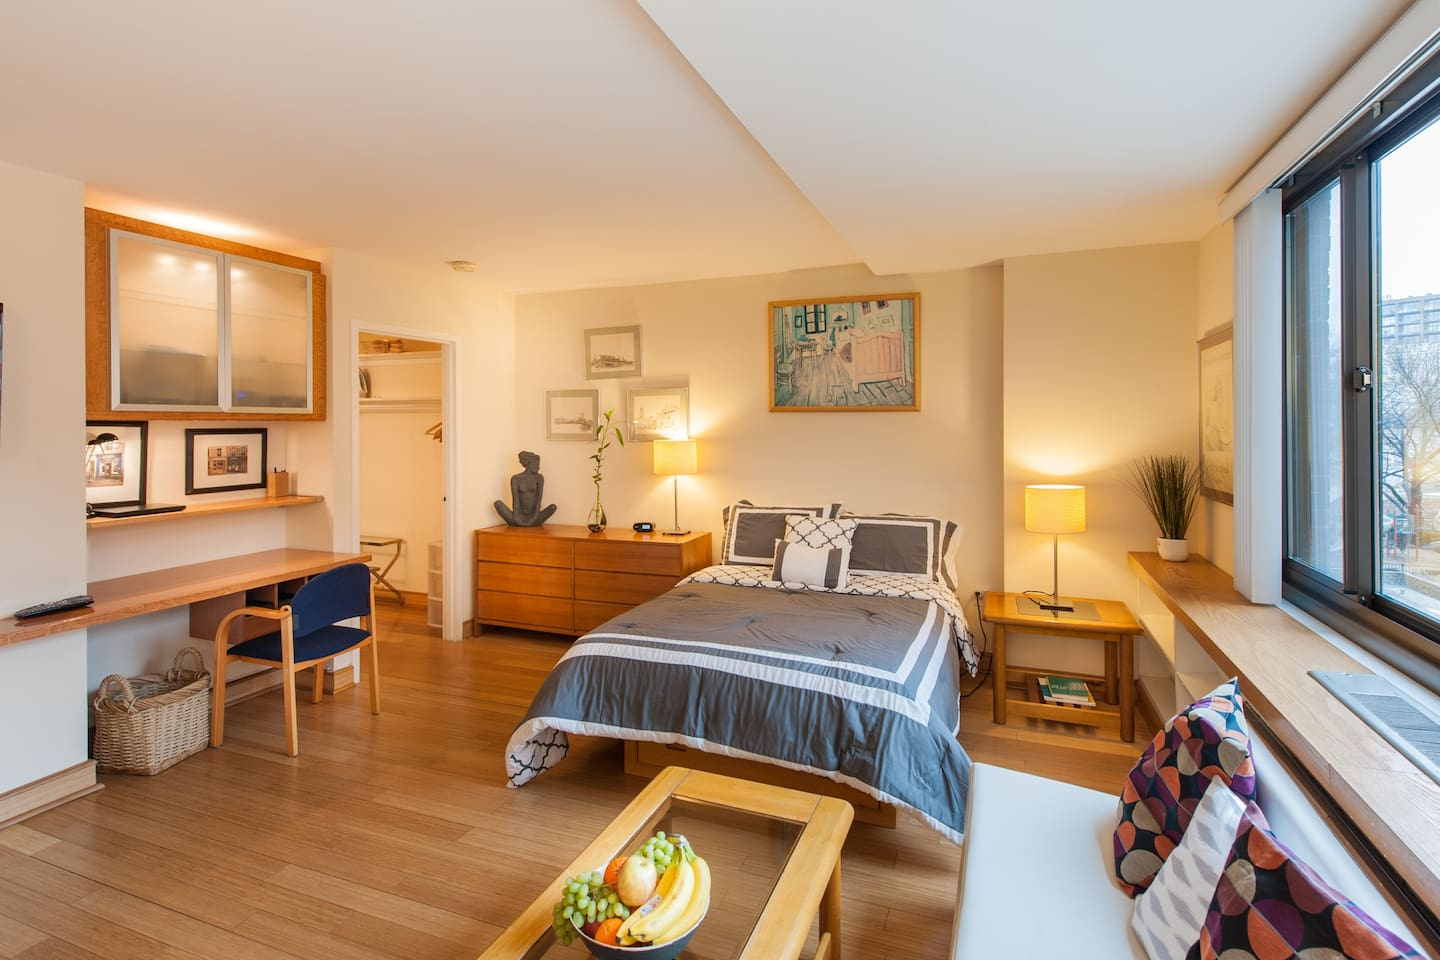 Unit features full-sized bed, gleaming bamboo floors.